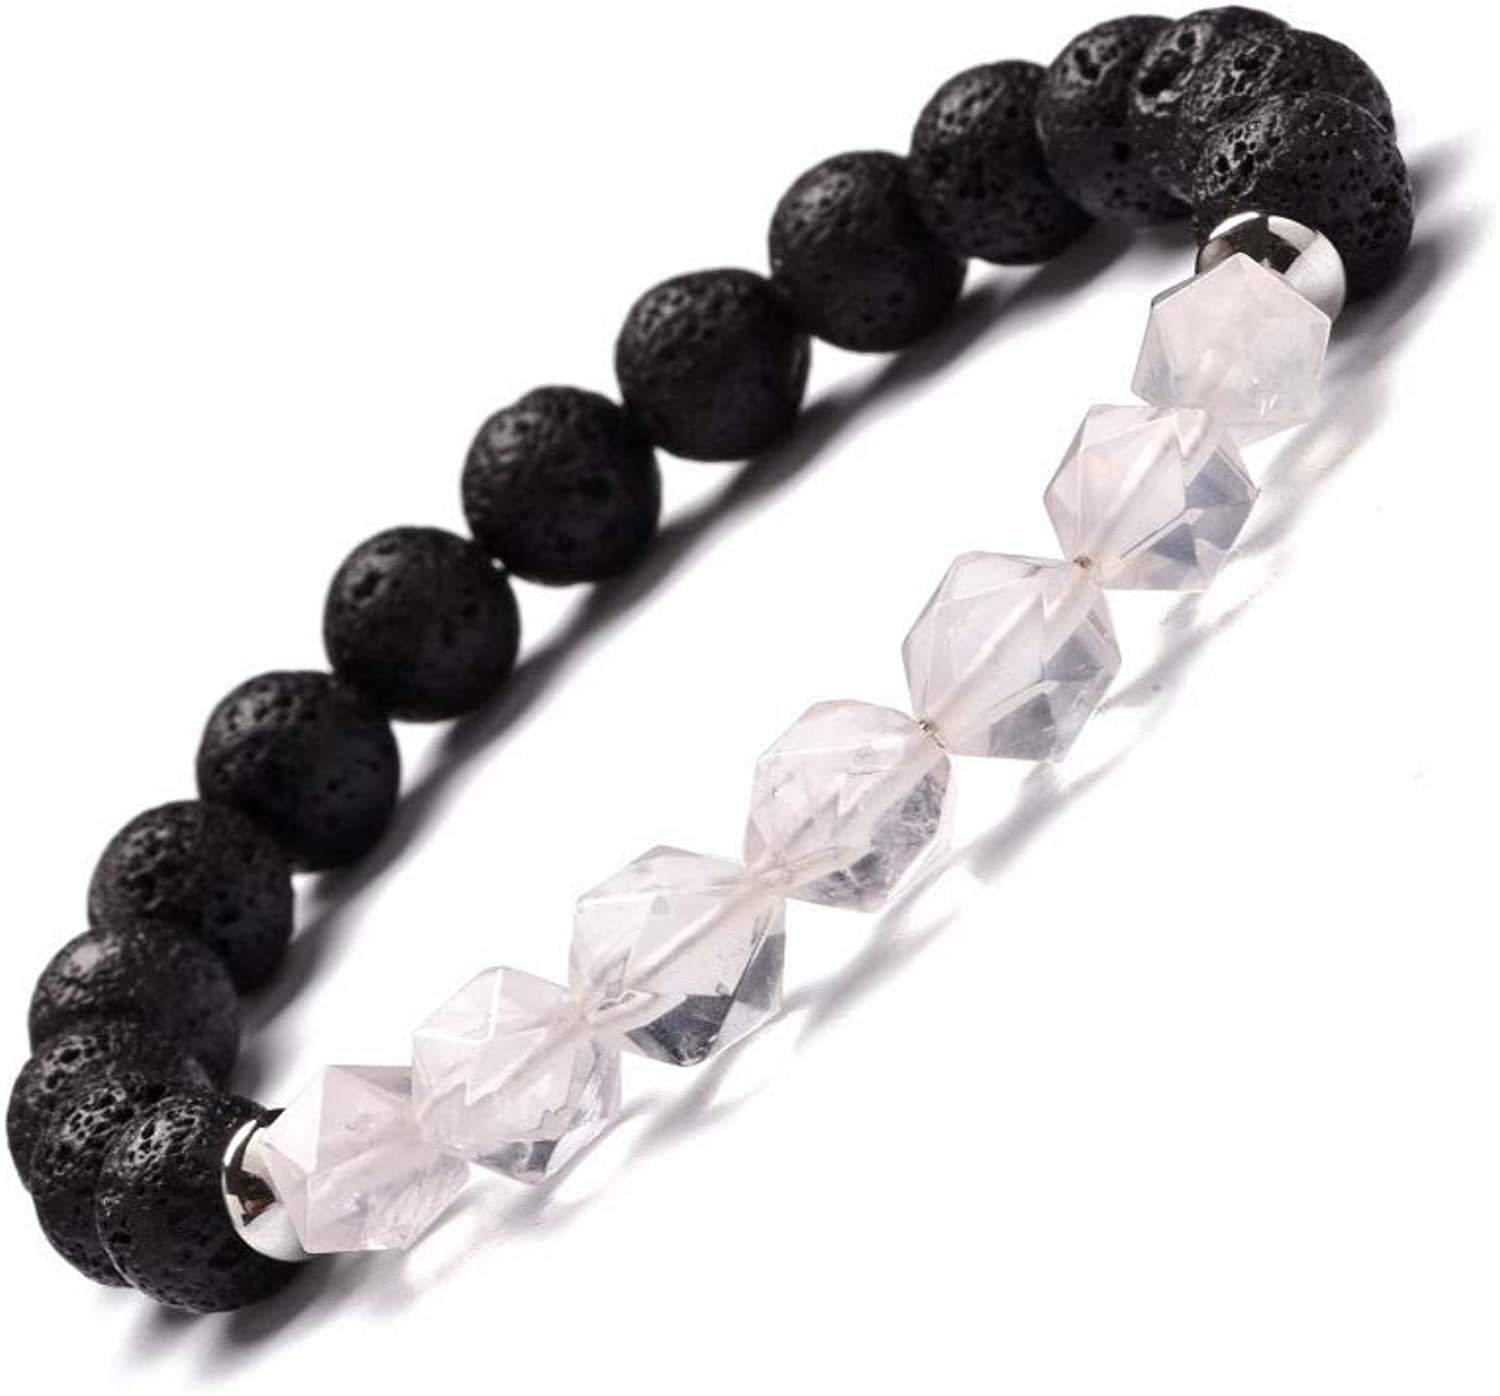 Zicue Stylish Charming Bracelet Exquisite Ornaments Natural Stone Amethyst Cutting Triangle Energy Crystal Bracelet Tiger Eye Stainless Steel Septum Bracelet ( color   SL166A4215 )